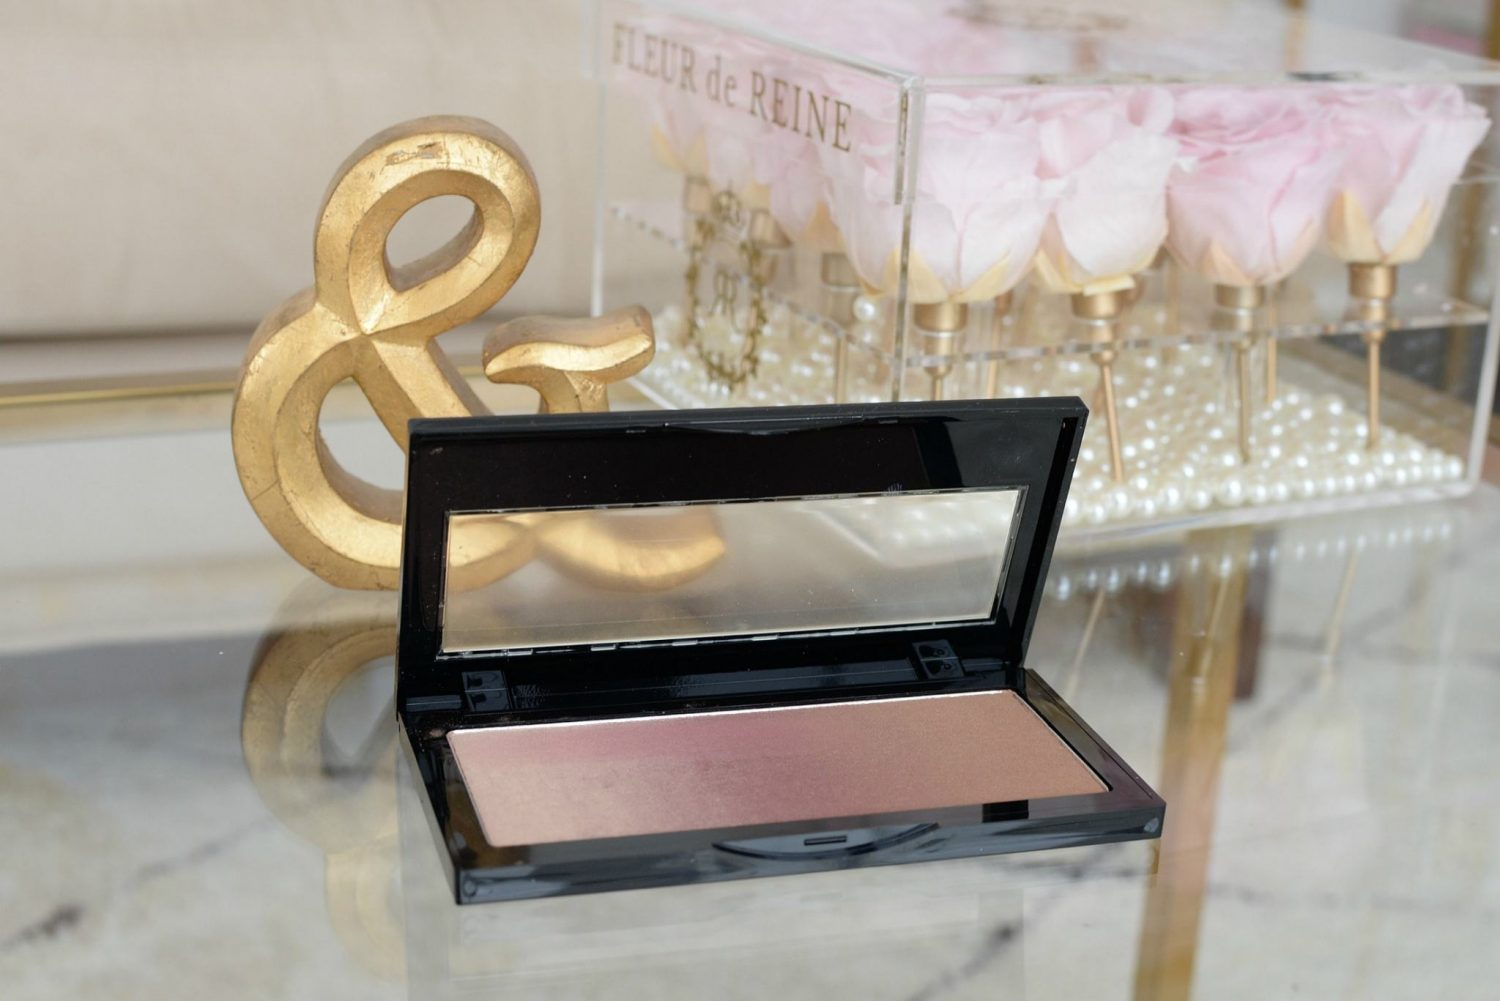 Ombre Radiance Palette | The Pink Millennial